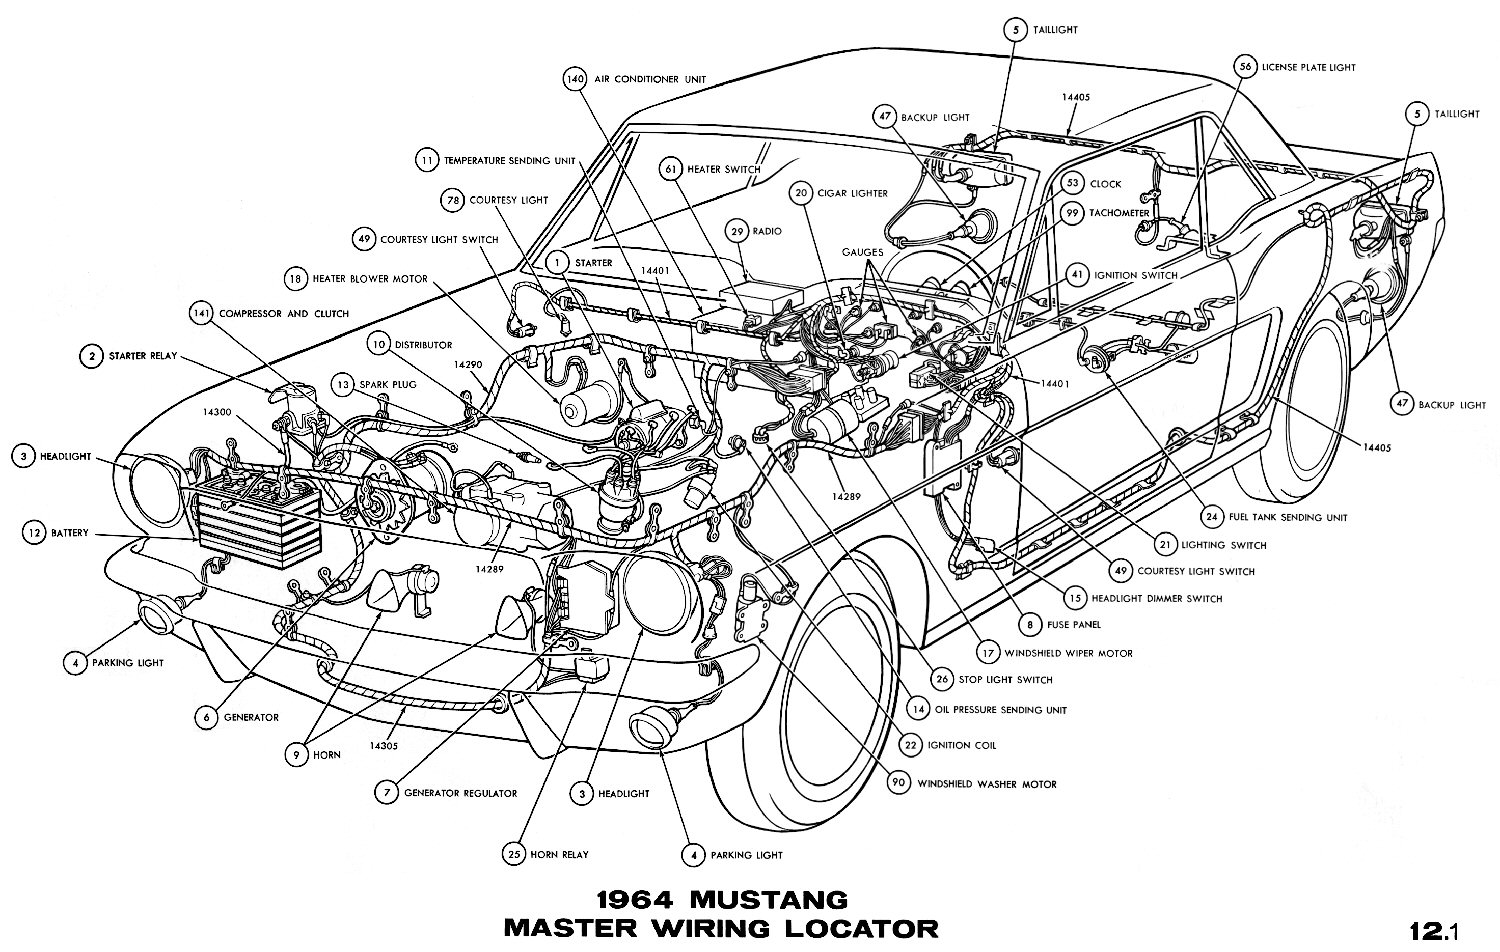 2011 ford mustang engine diagram blueprints ford mustang engine diagram